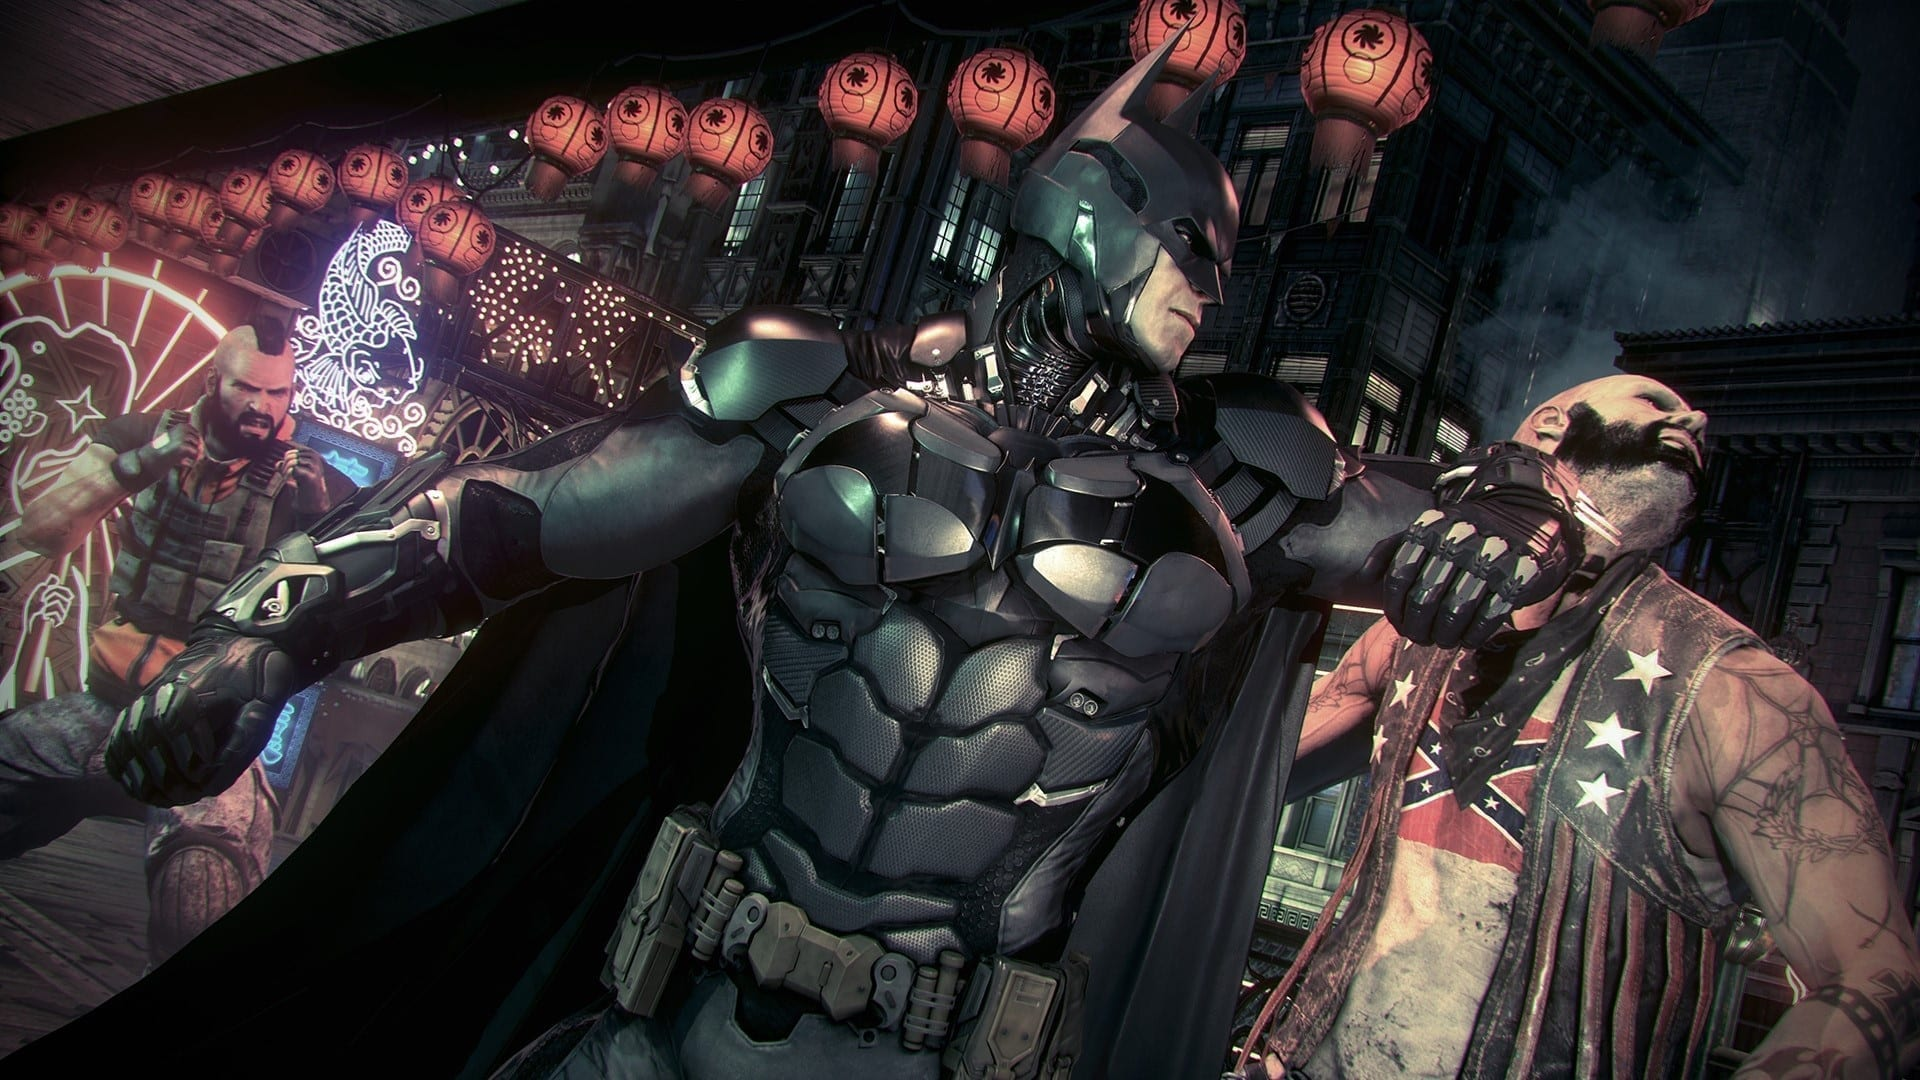 Batman Arkam Knight